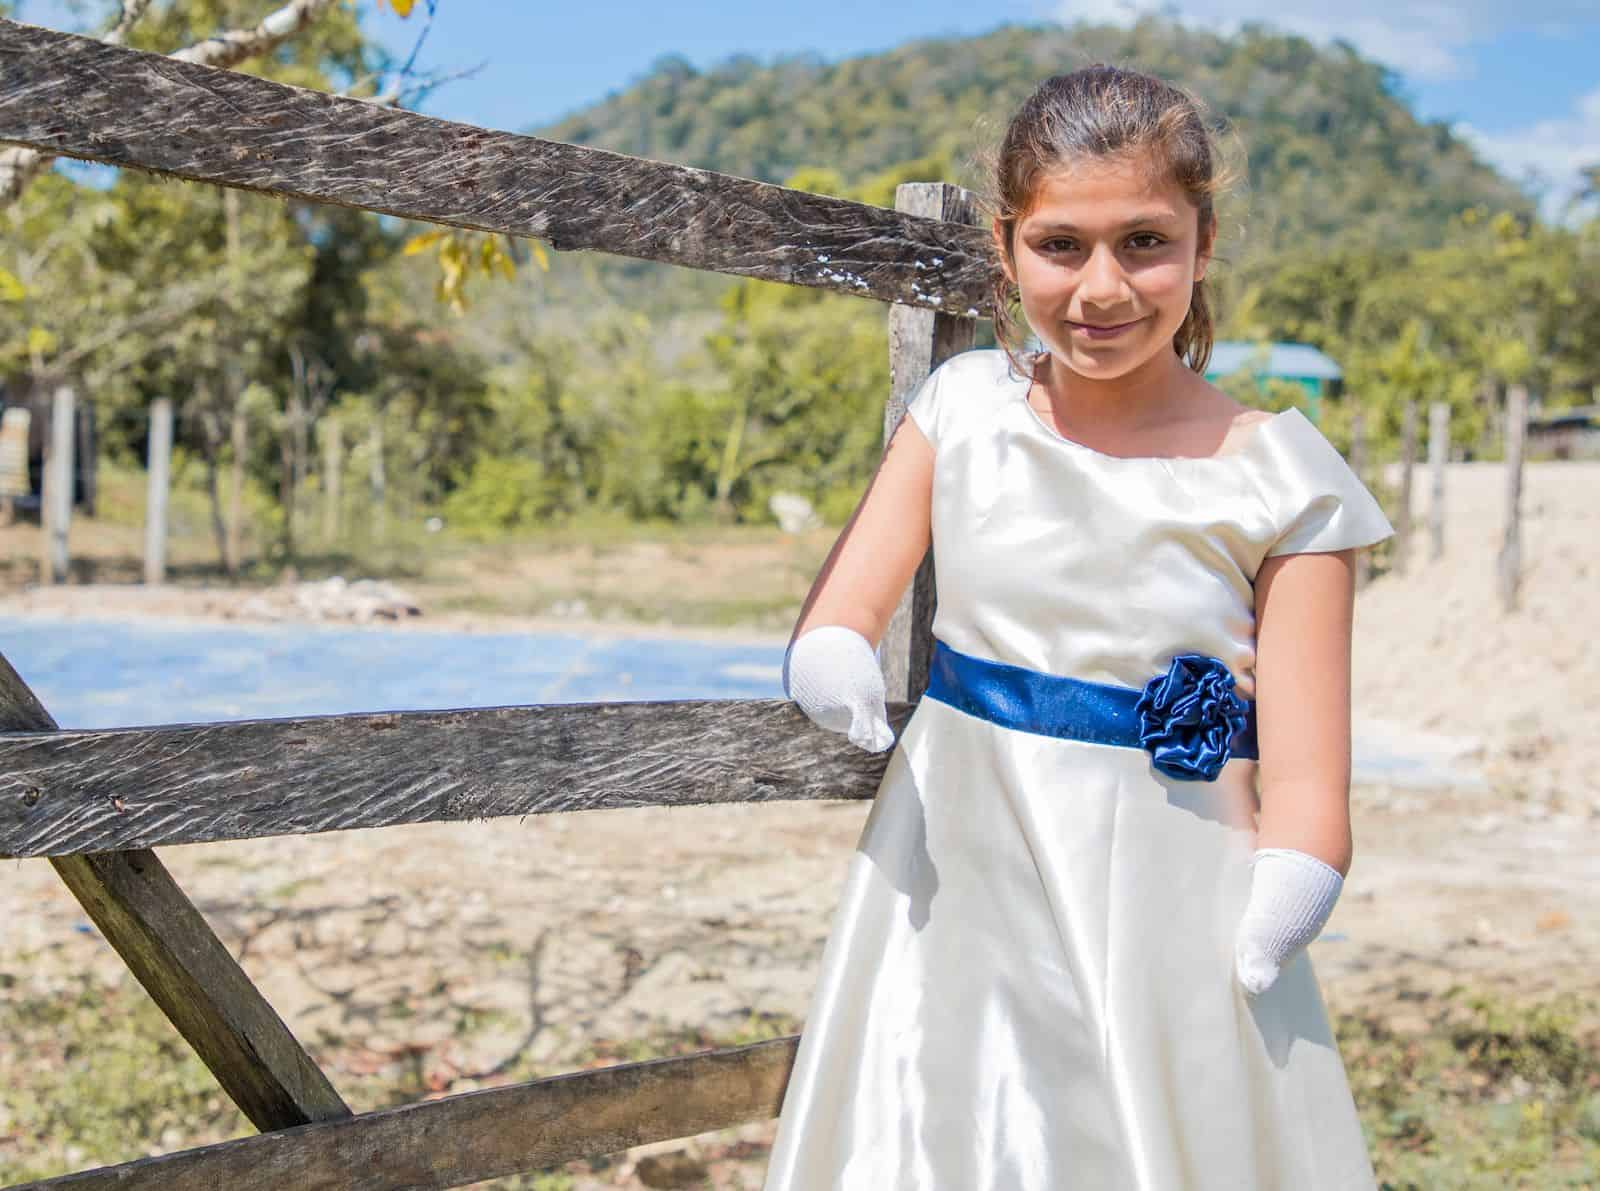 A girl with no hands wearing a white dress with a blue sash leans against a fence.